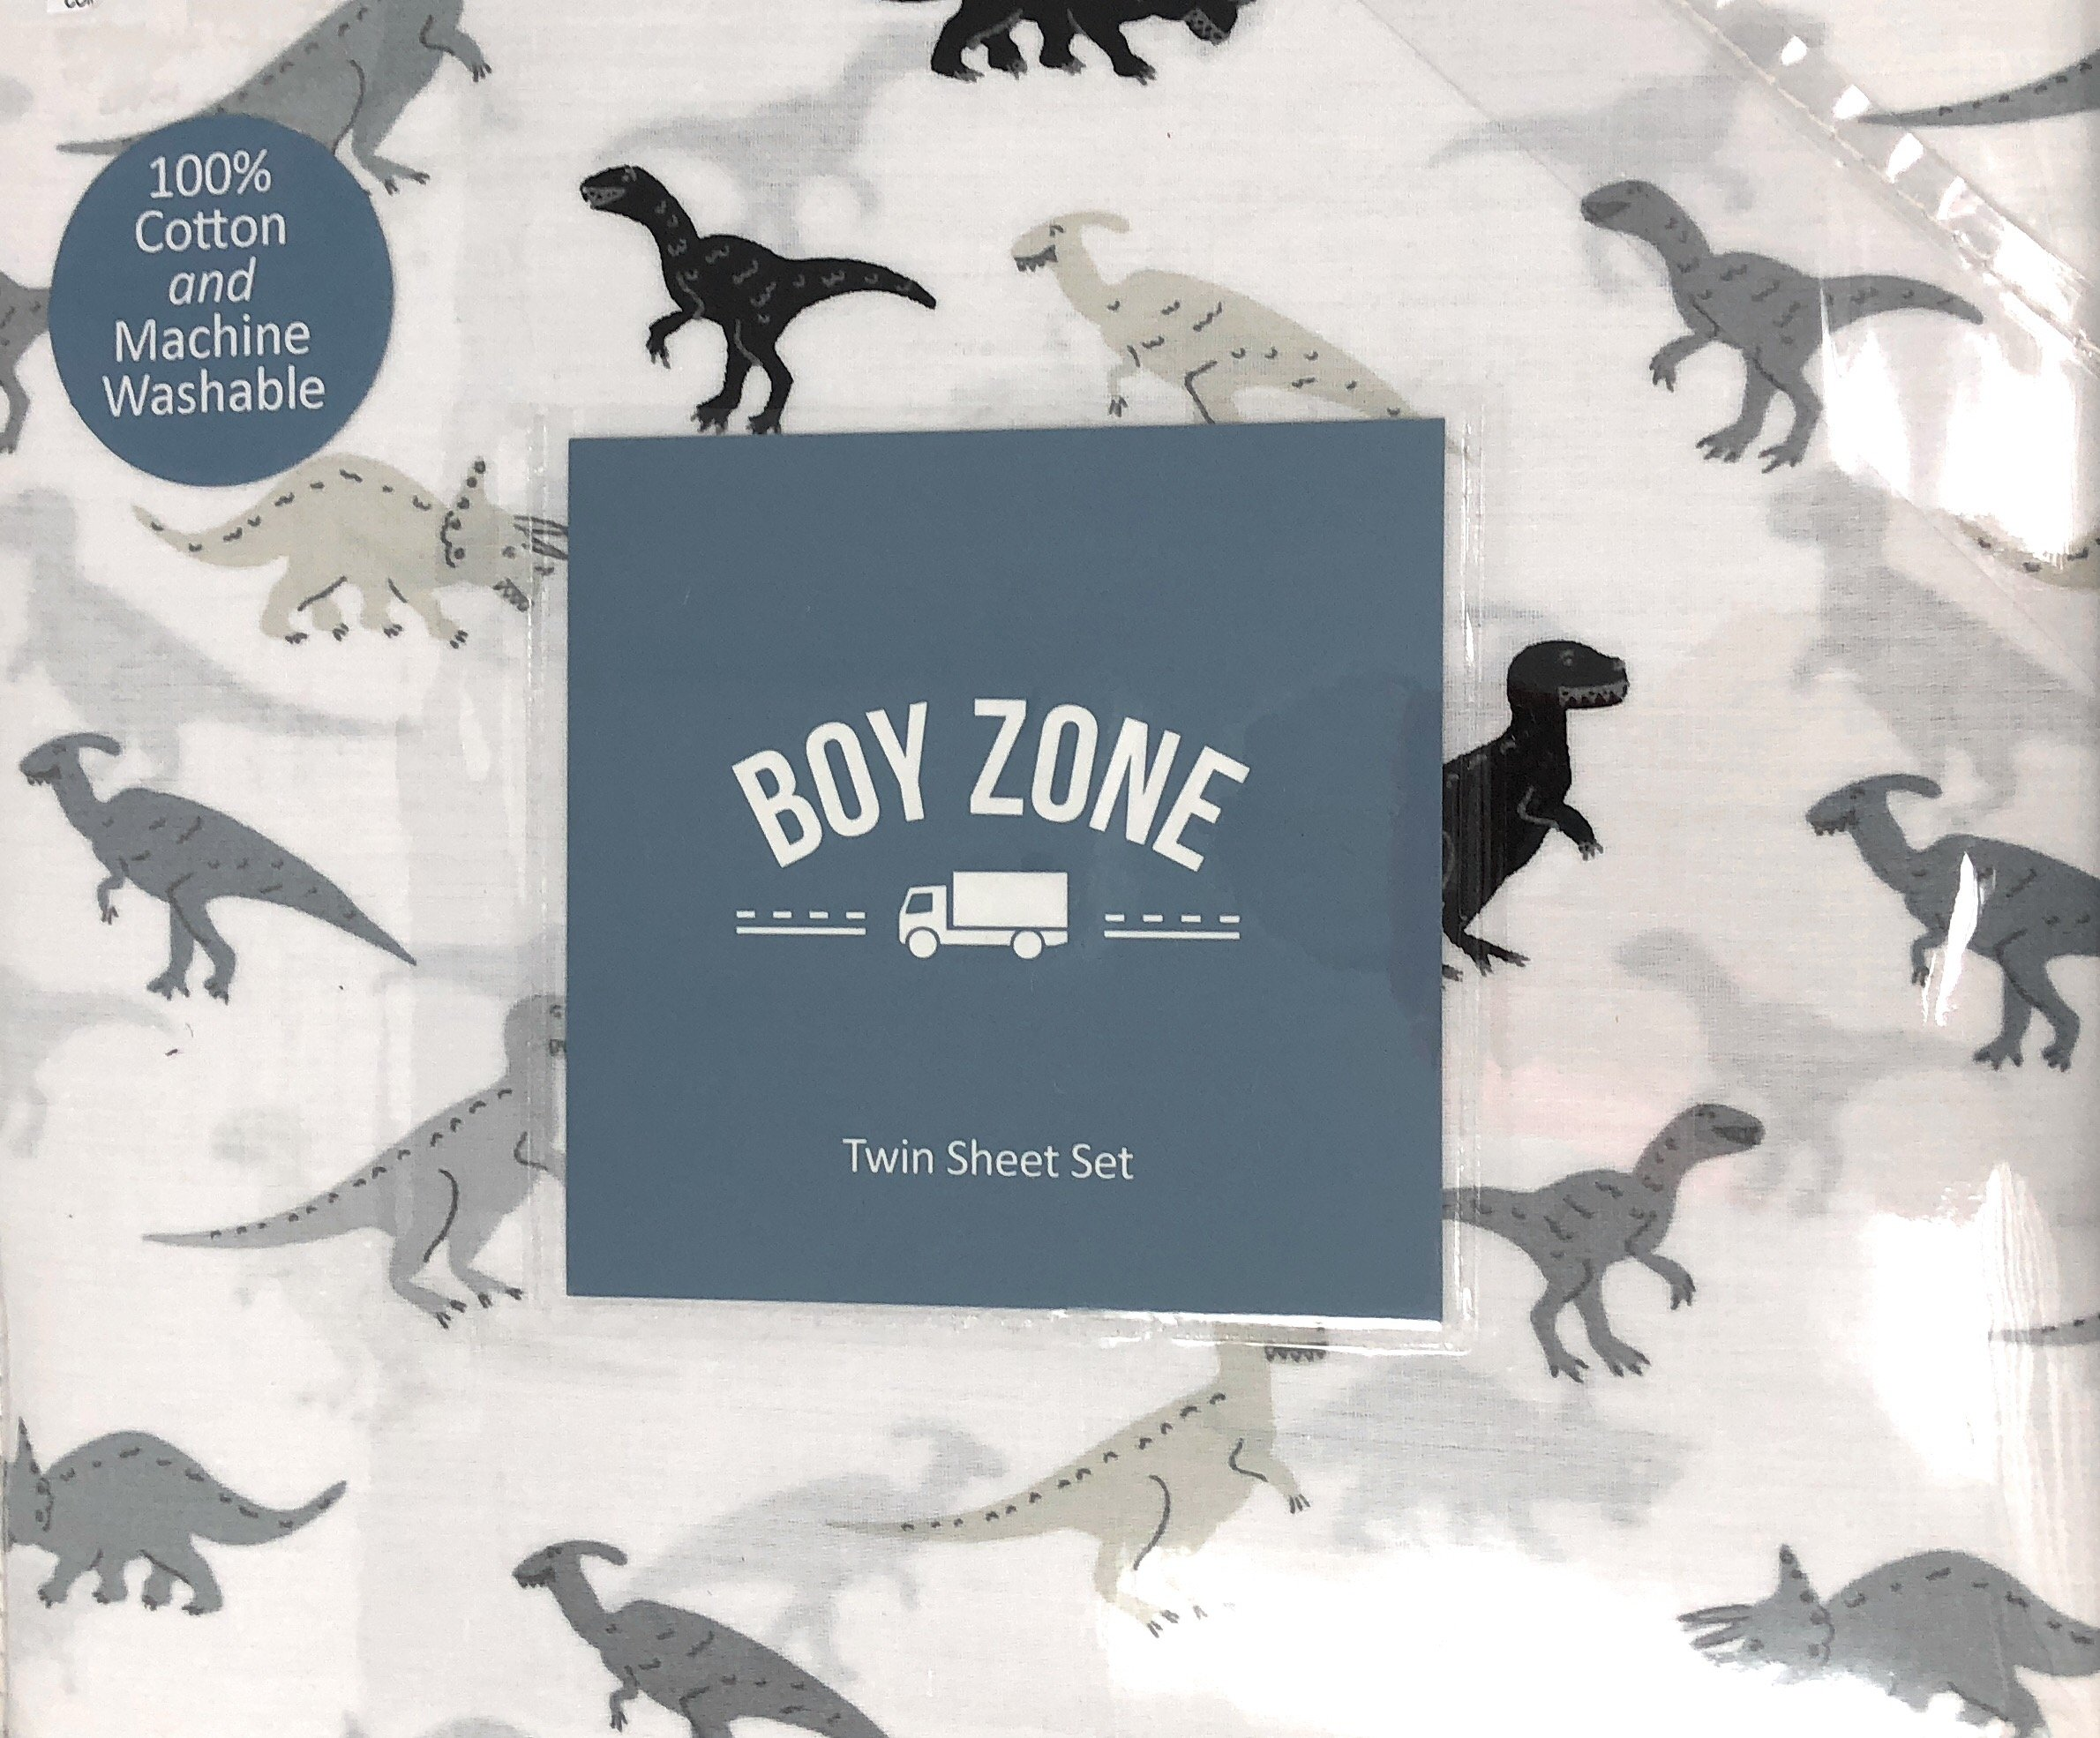 Boy Zone Dinosaurs at Large on White TWIN Sheet Set | 100% Cotton | Gray Scale/Black Dinos | Different types of dinosaurs